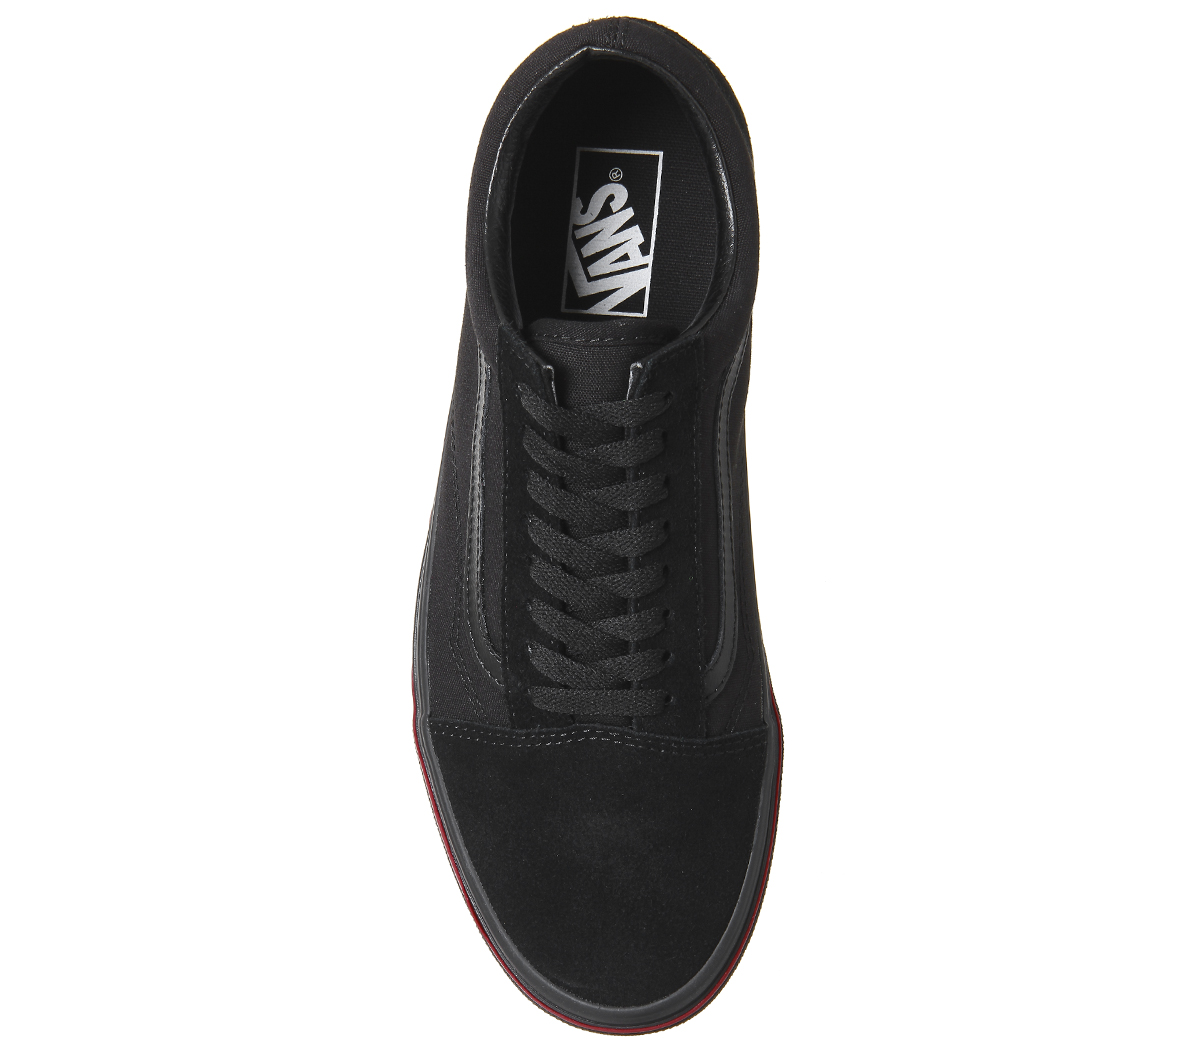 a28ce606fa42fb Mens Vans Old Skool Trainers Black Flame Wall Trainers Shoes